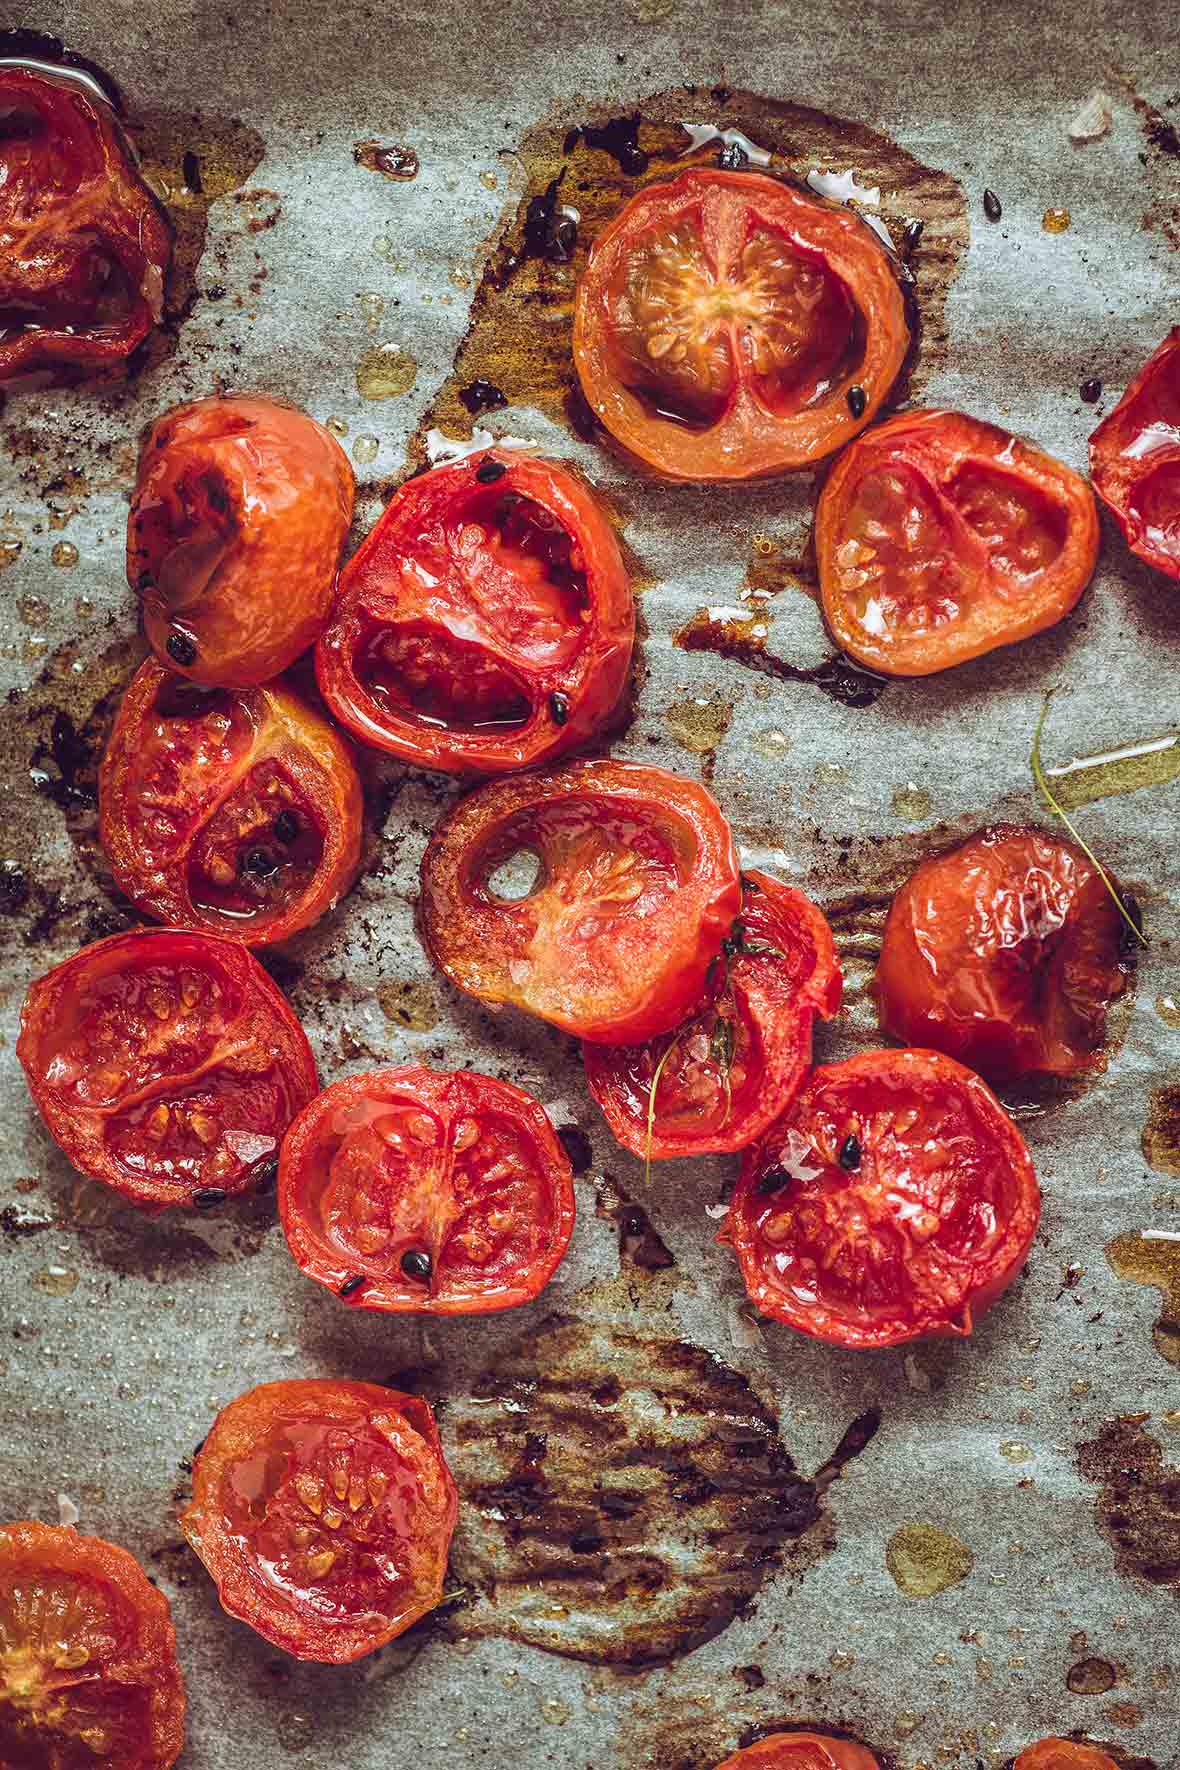 Halved slow roasted tomatoes on a piece of parchment with drops of oil and flakes of salt.